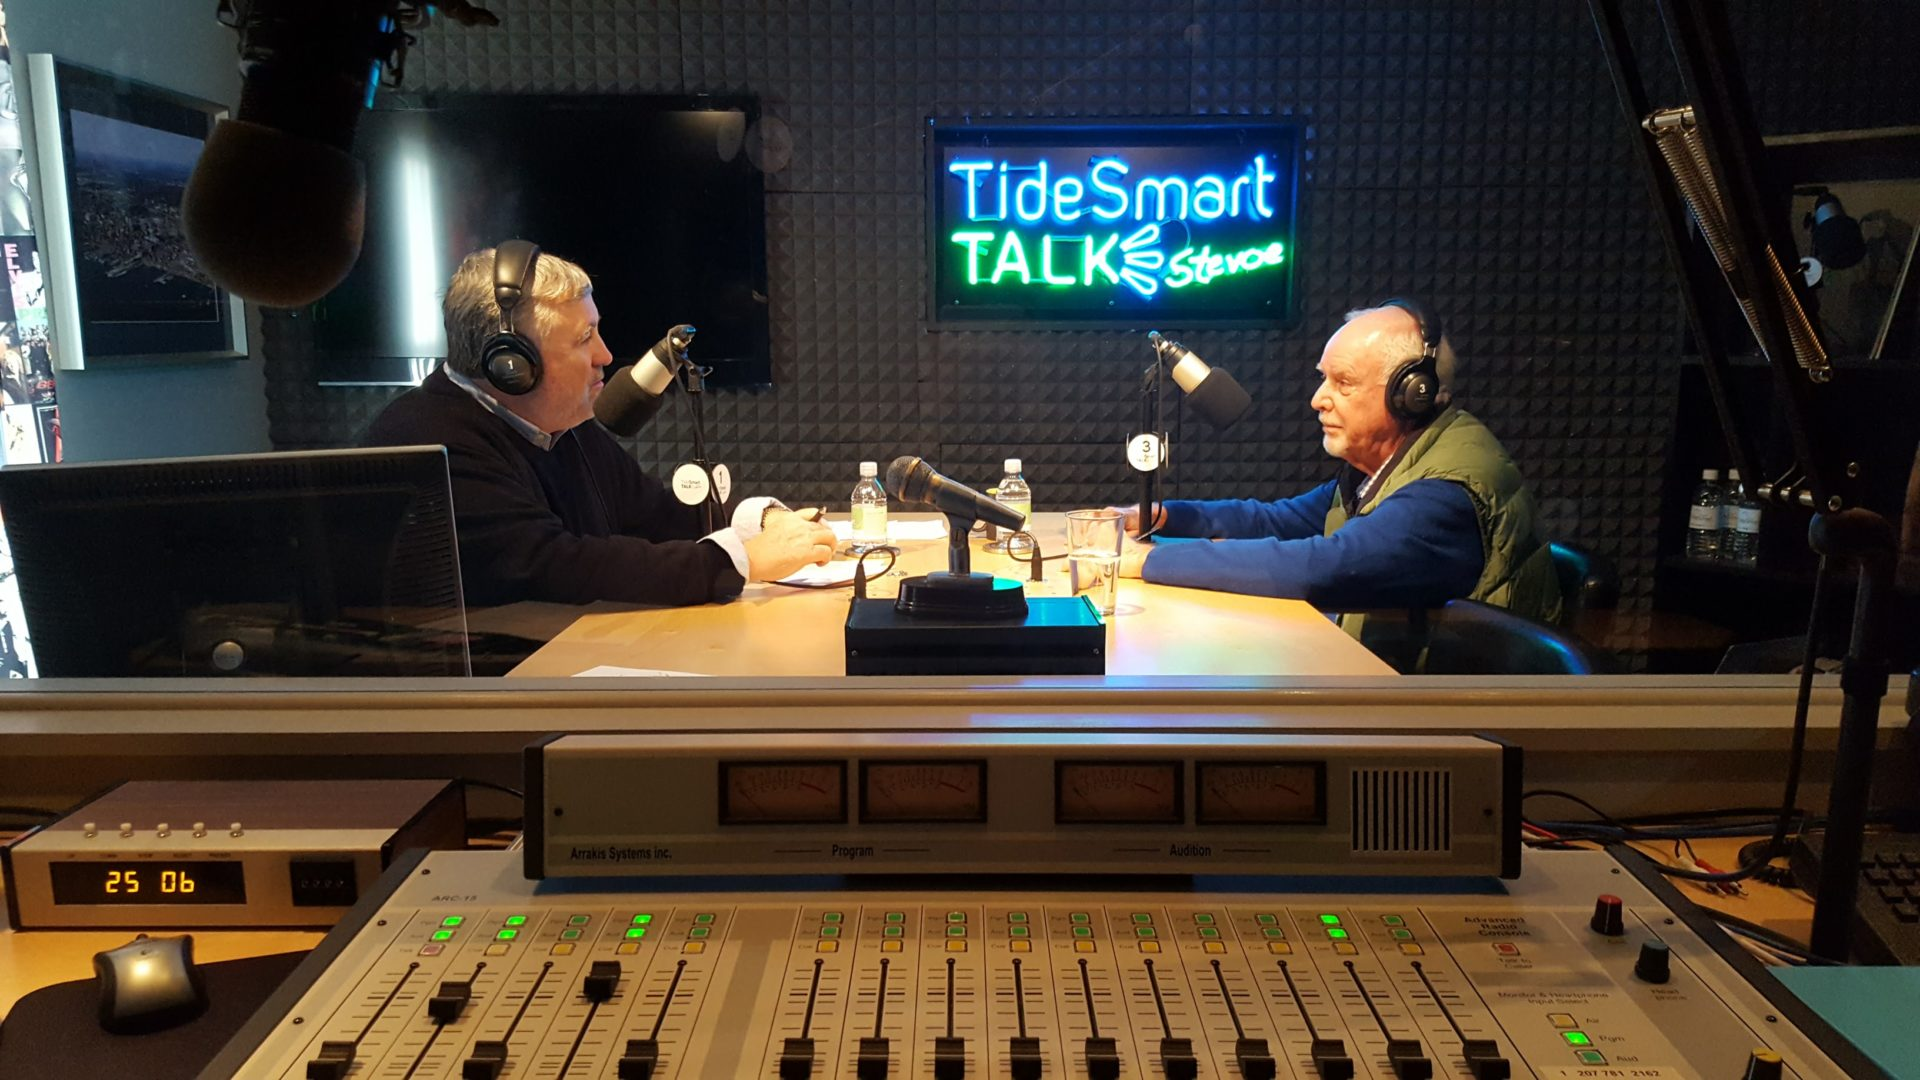 Host of TideSmart Talk with Stevoe, Steve Woods, welcomed the Executive Director of Habitat for Humanity Greater Portland, Godfrey Wood (at right).